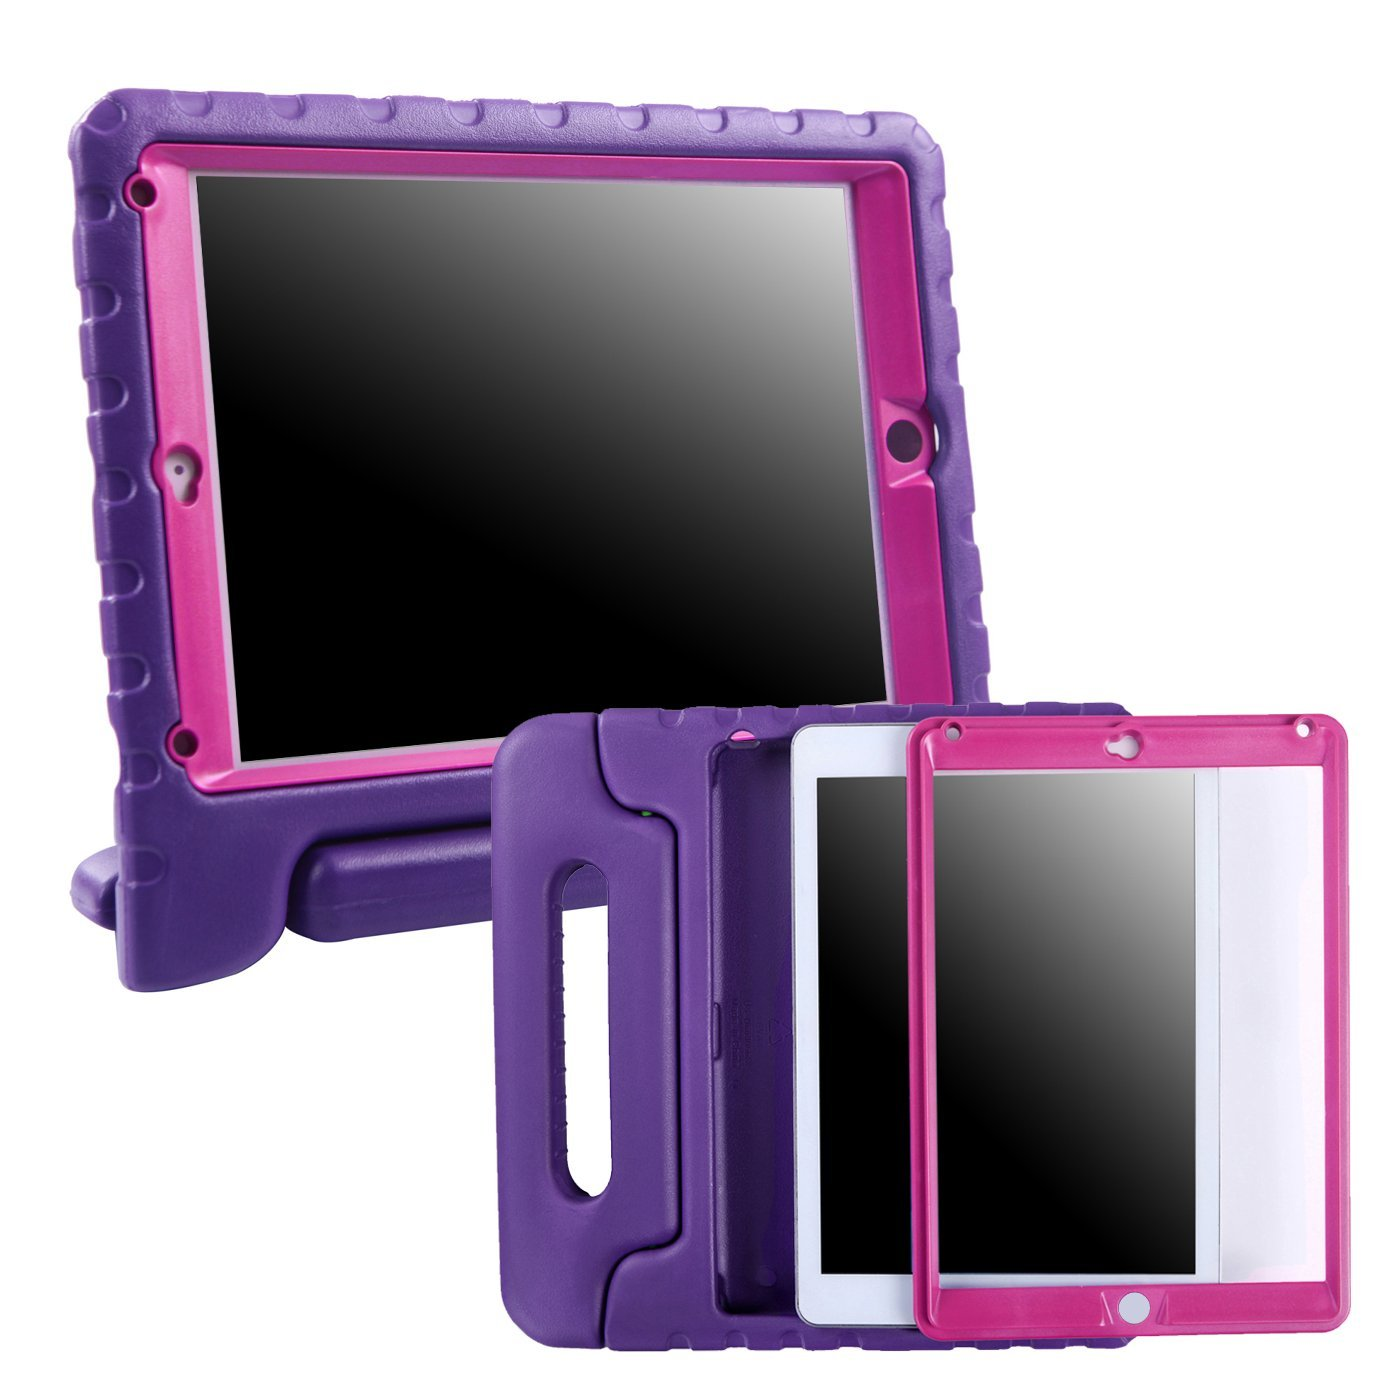 HDE Case for iPad Mini 1 2 3 Kids Shockproof Bumper Hard Cover Handle Stand with Built in Screen Protector for Apple iPad Mini 1st 2nd 3rd Generation (Purple Pink)